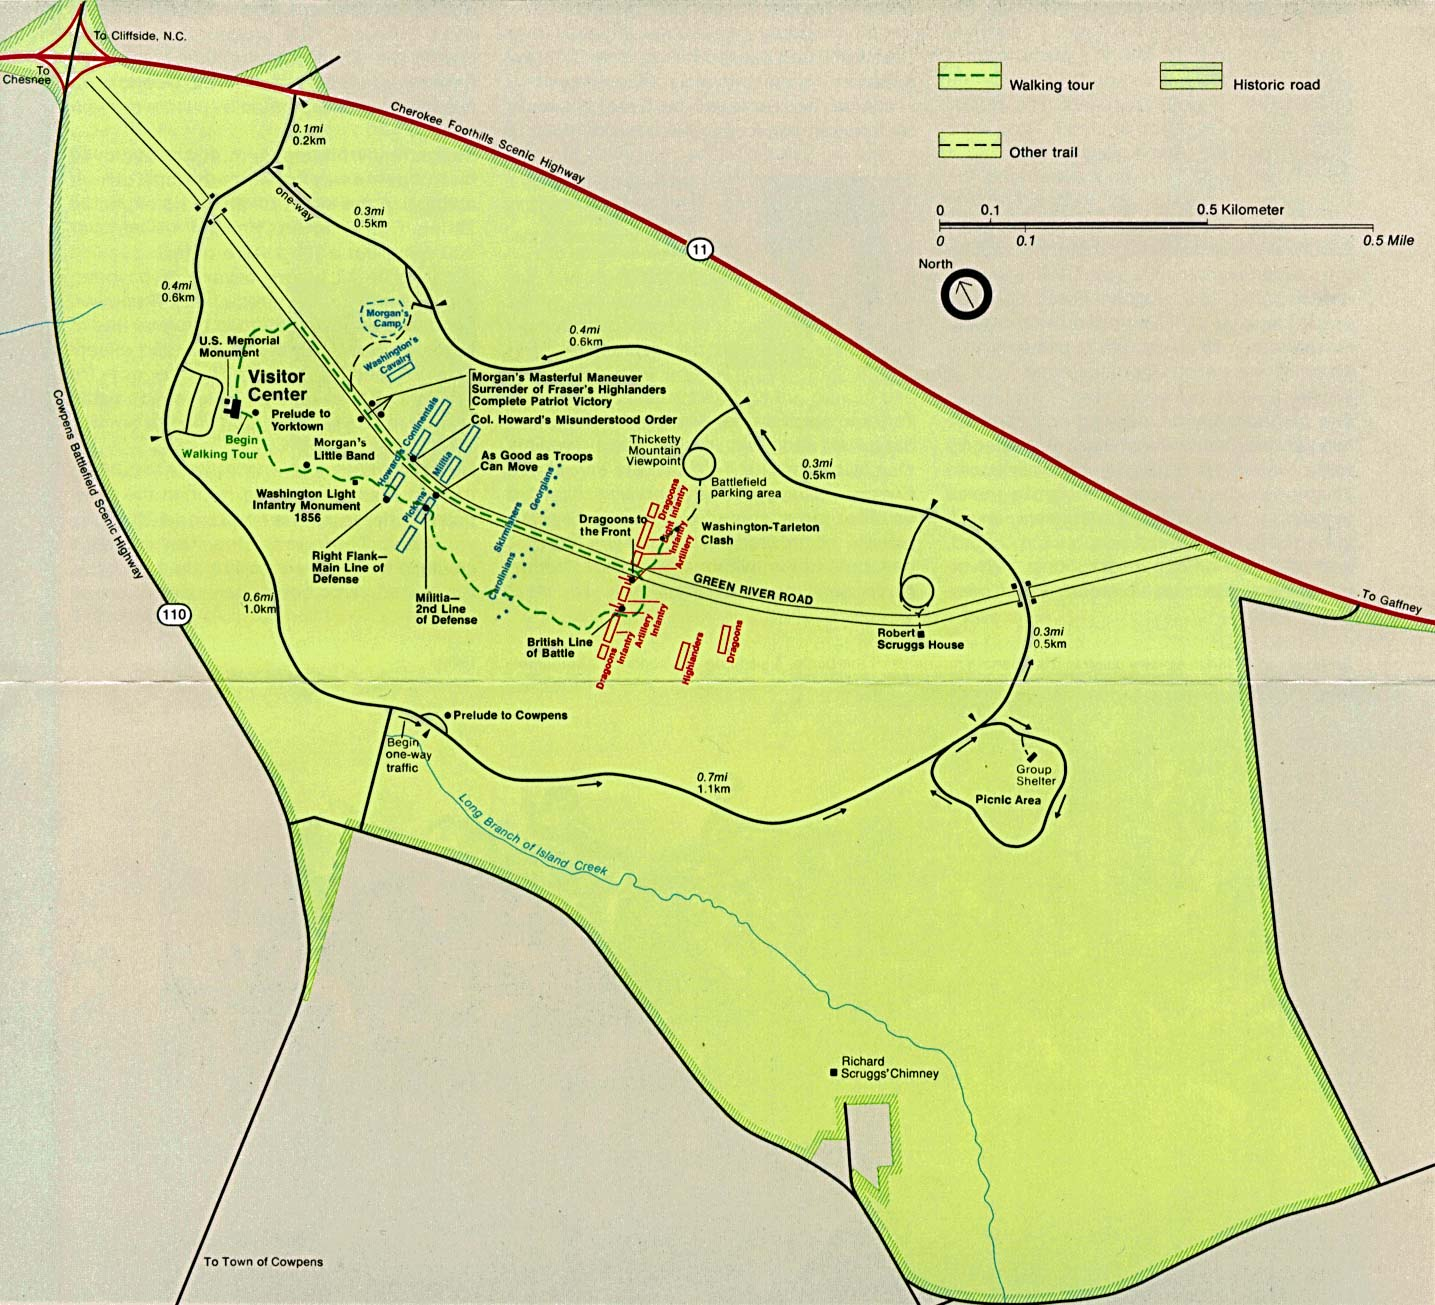 Park Map of Cowpens National Battlefield, South Carolina, United States